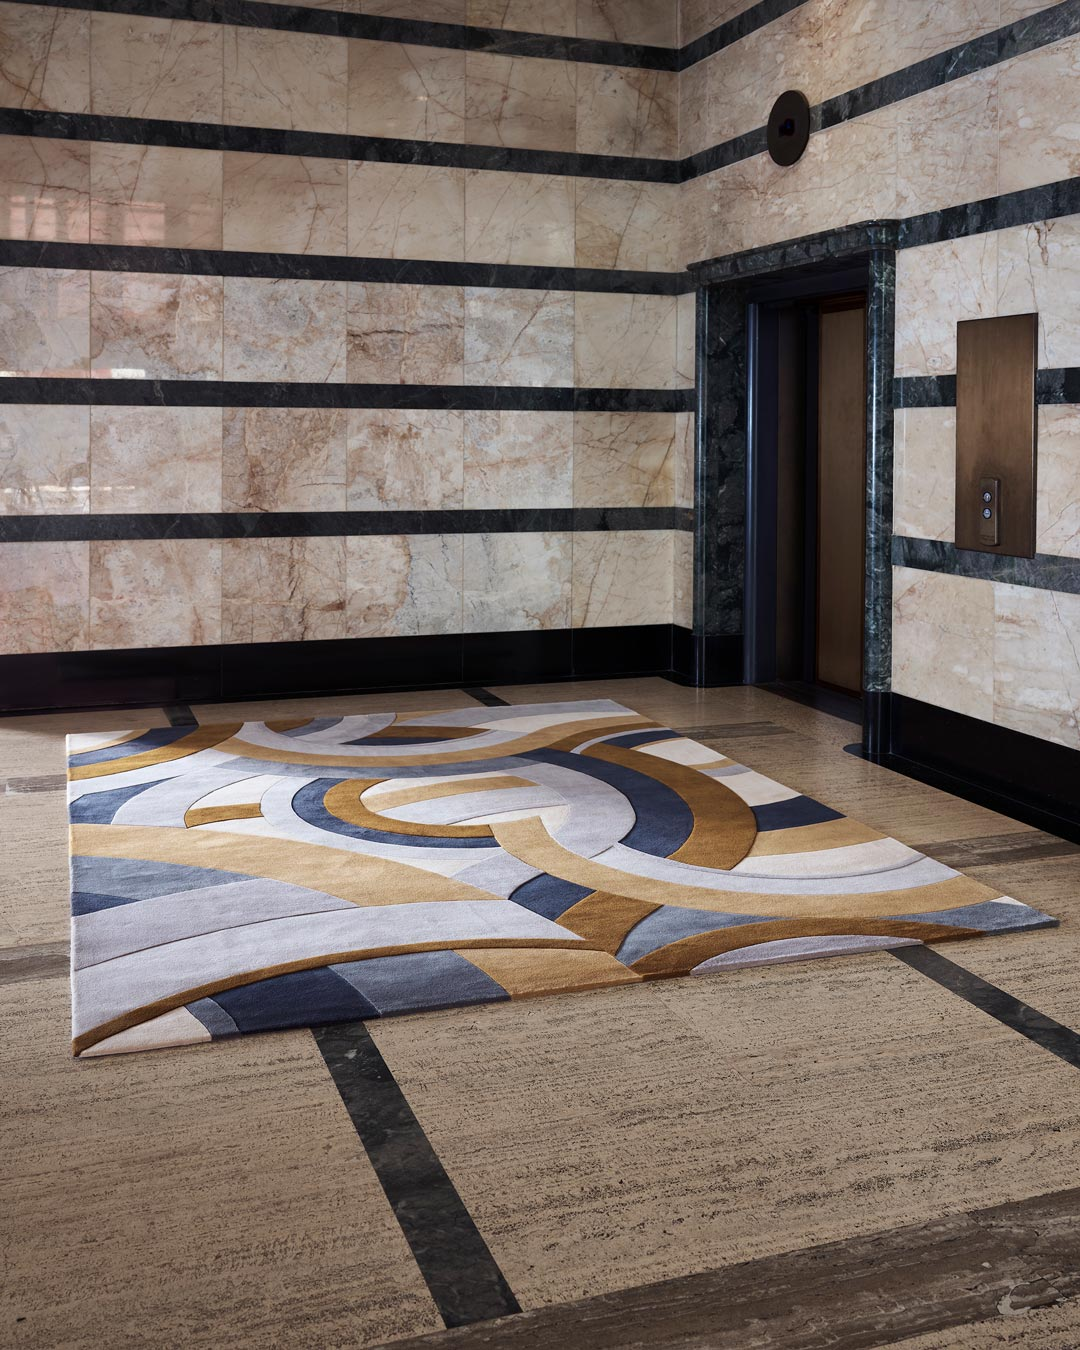 location shot of ruhlmann rug by greg natale